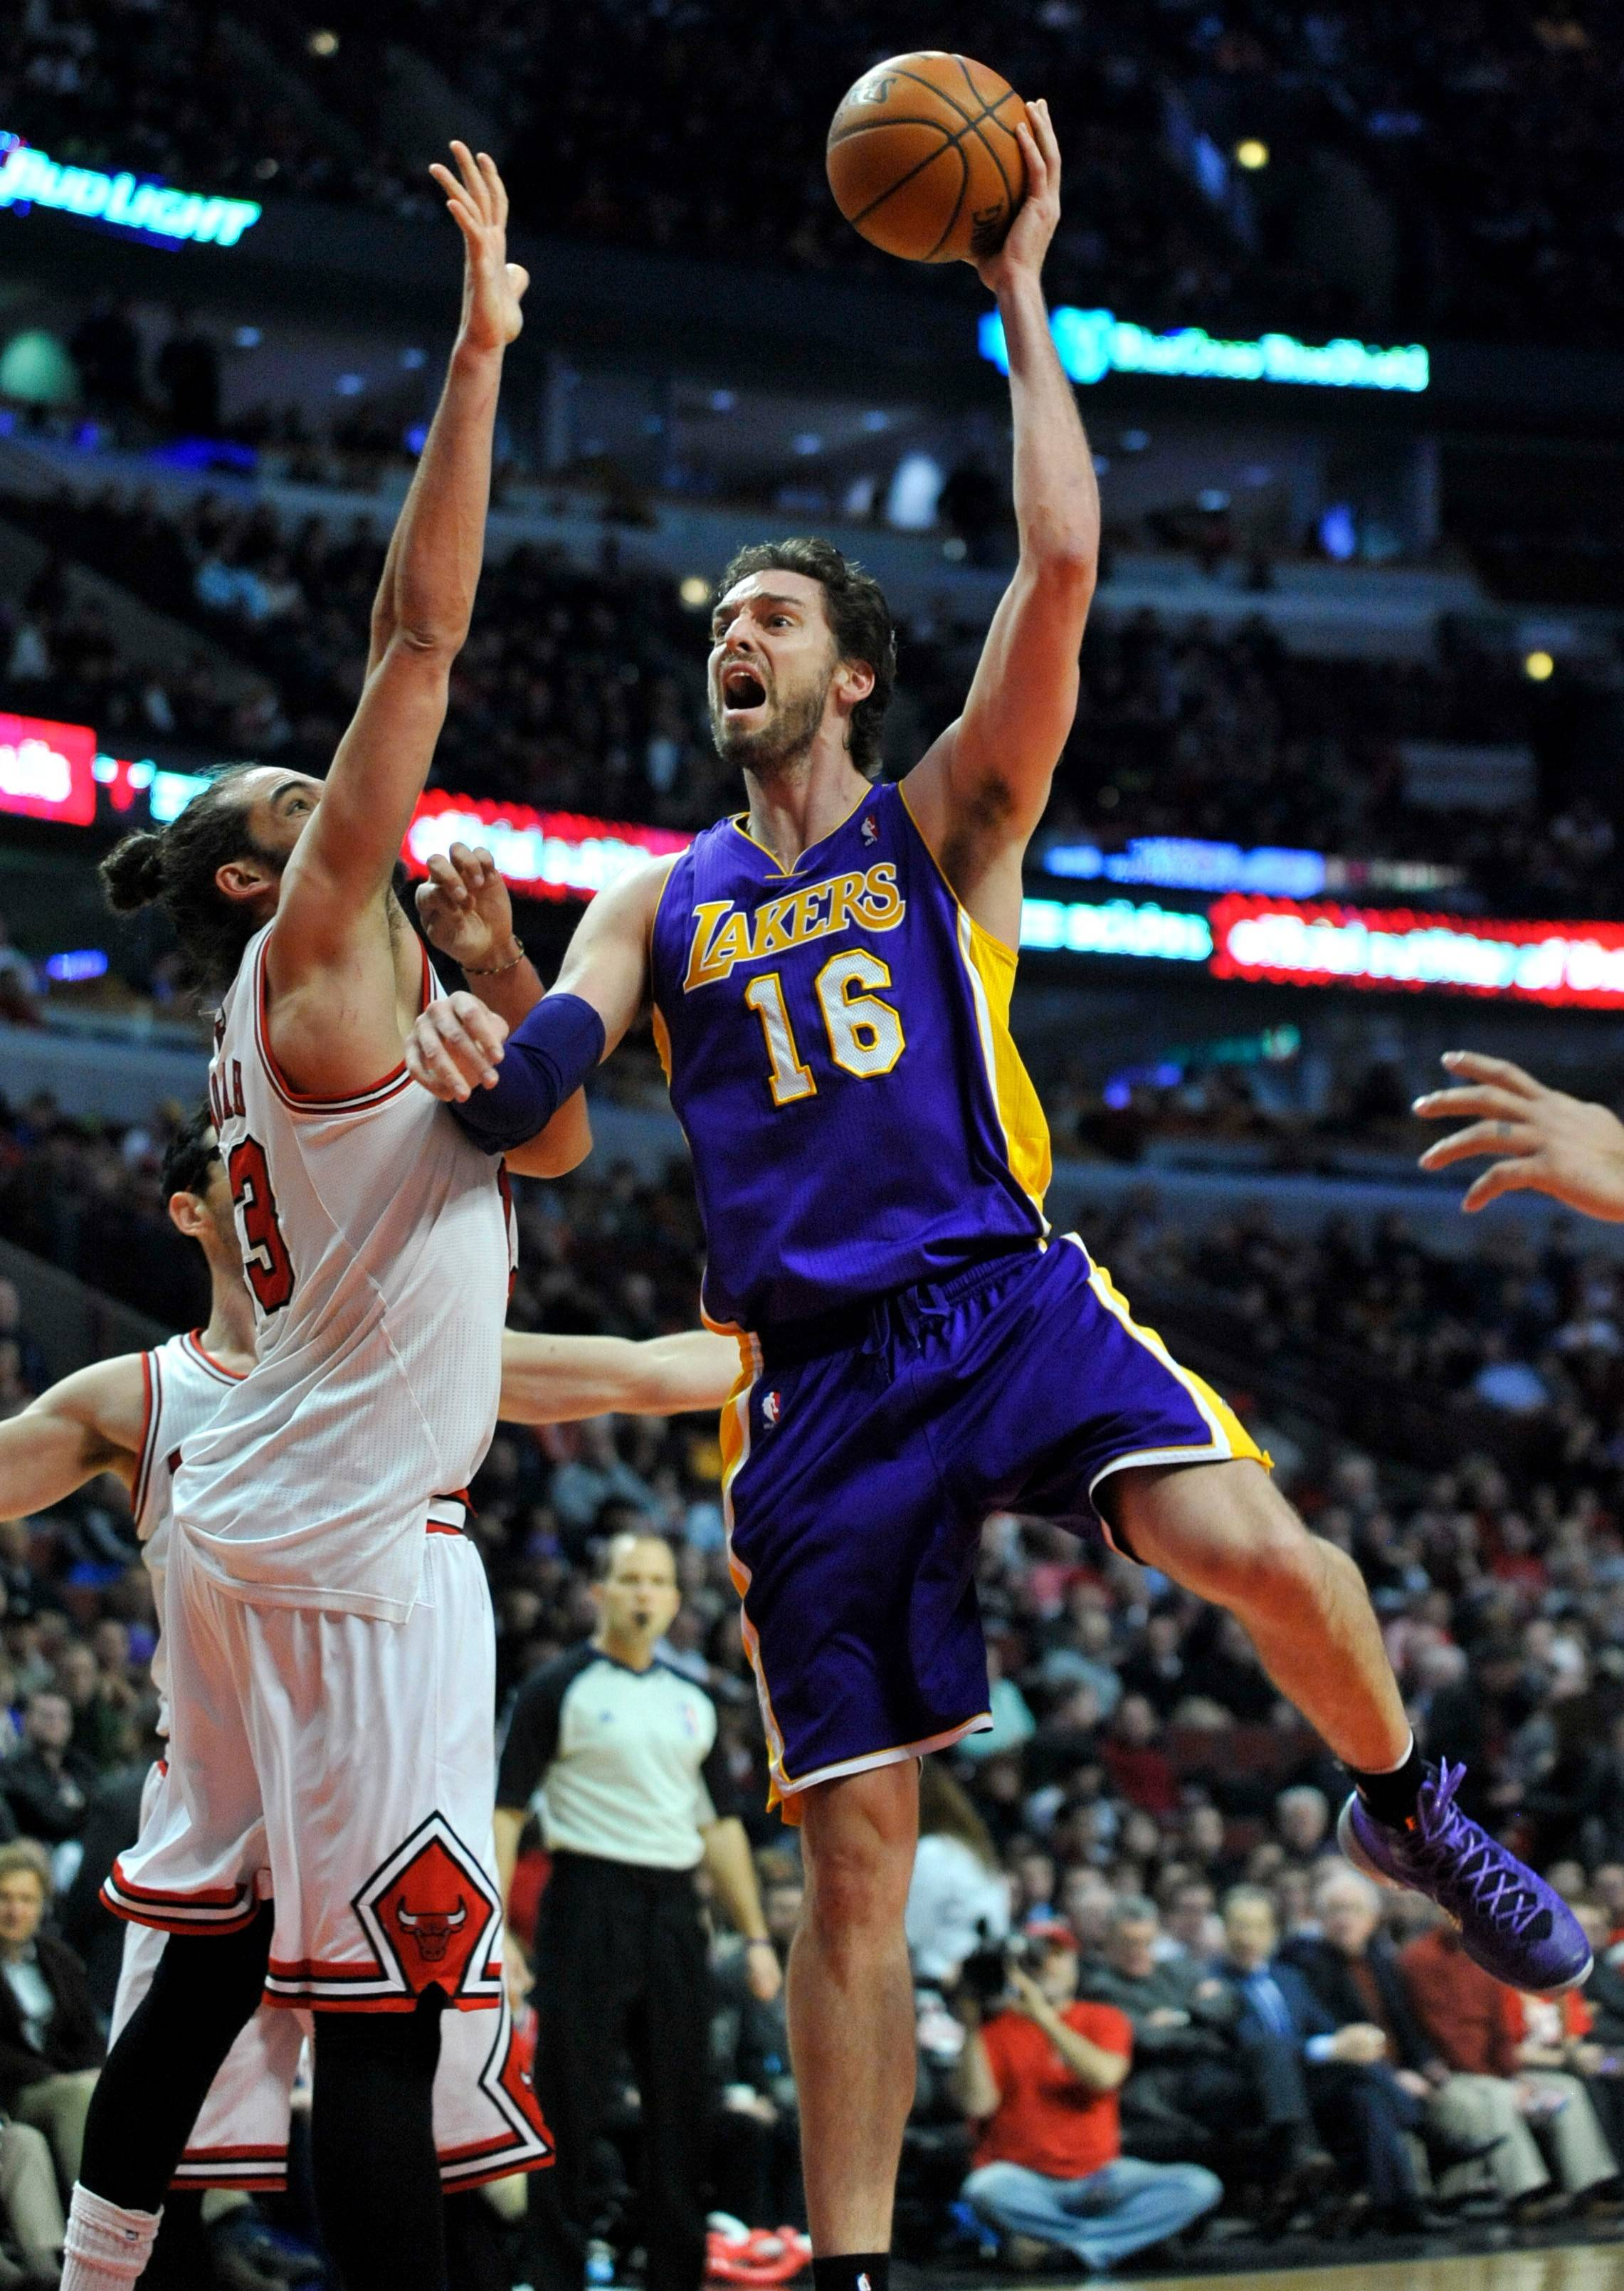 Pau Gasol (16), who signed with the Chicago Bulls, averaged 17.4 points and 9.4 rebounds per game last season for the Los Angeles Lakers.